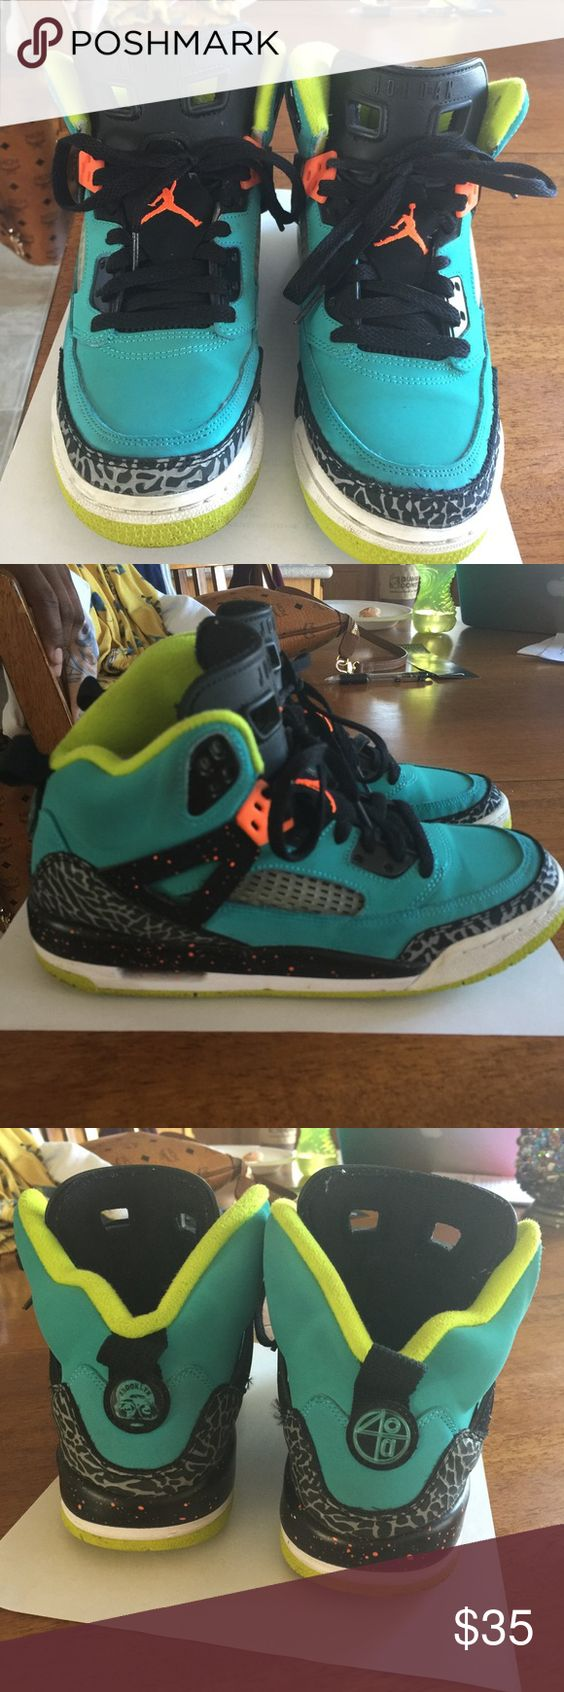 Teal Jordan Spizikes kids size 5.5 Teal, black, gray with lime accents; these Jordan Spizikes are in great condition. My son simply outgrew them. Jordan Shoes Sneakers